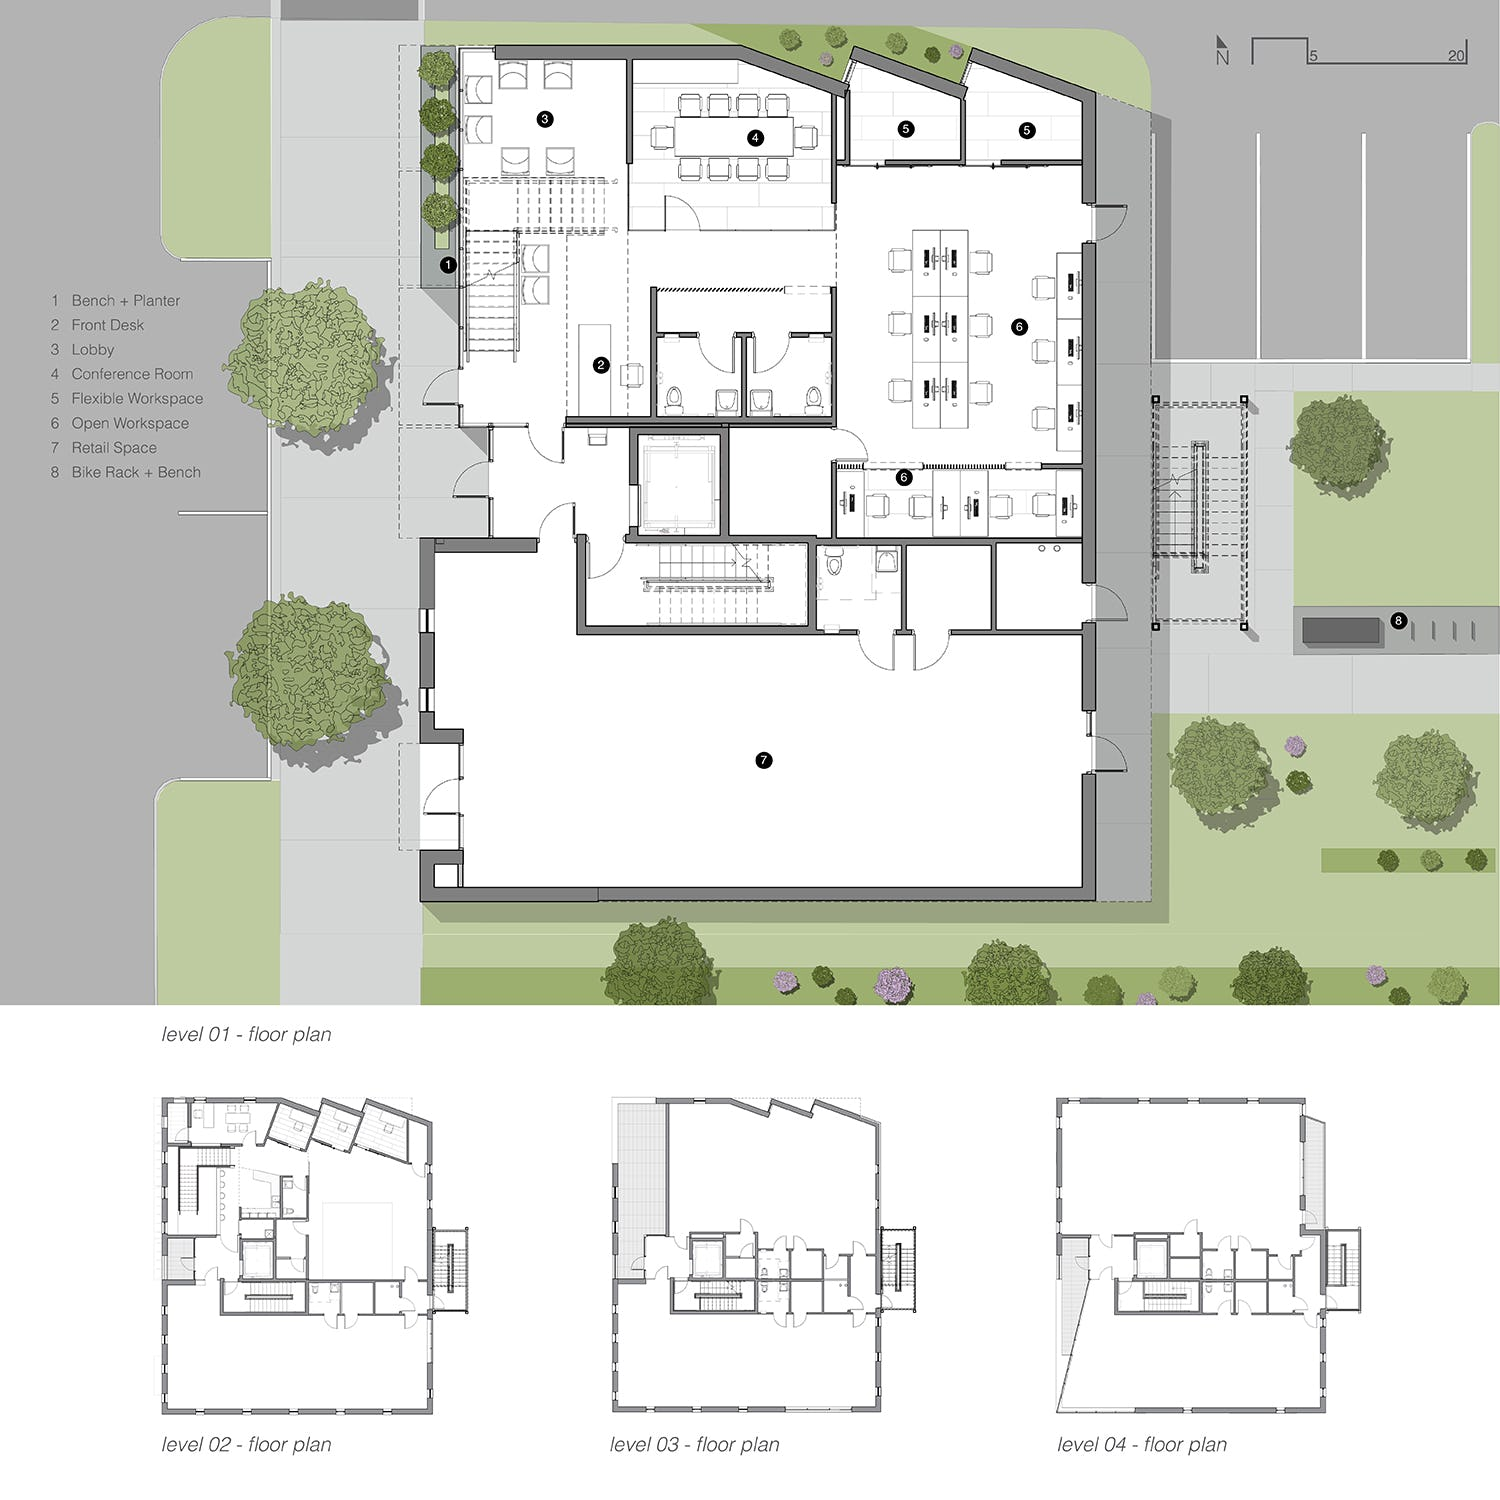 Modus studio main x mdrn floor plans